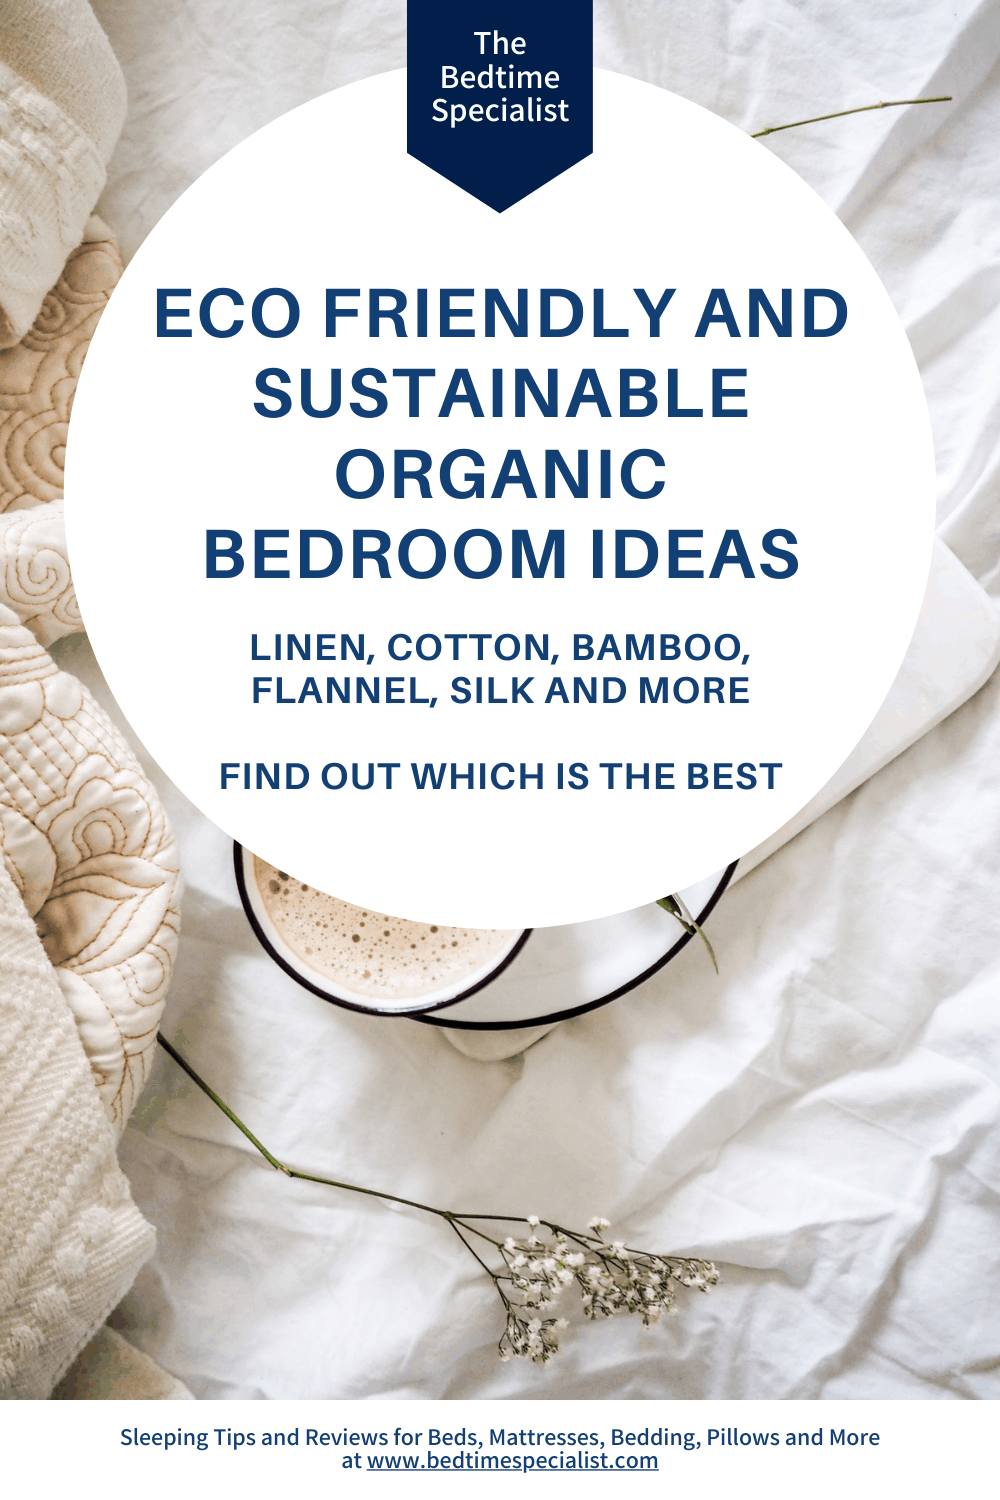 Eco Friendly and Sustainable Organic Bedroom Ideas